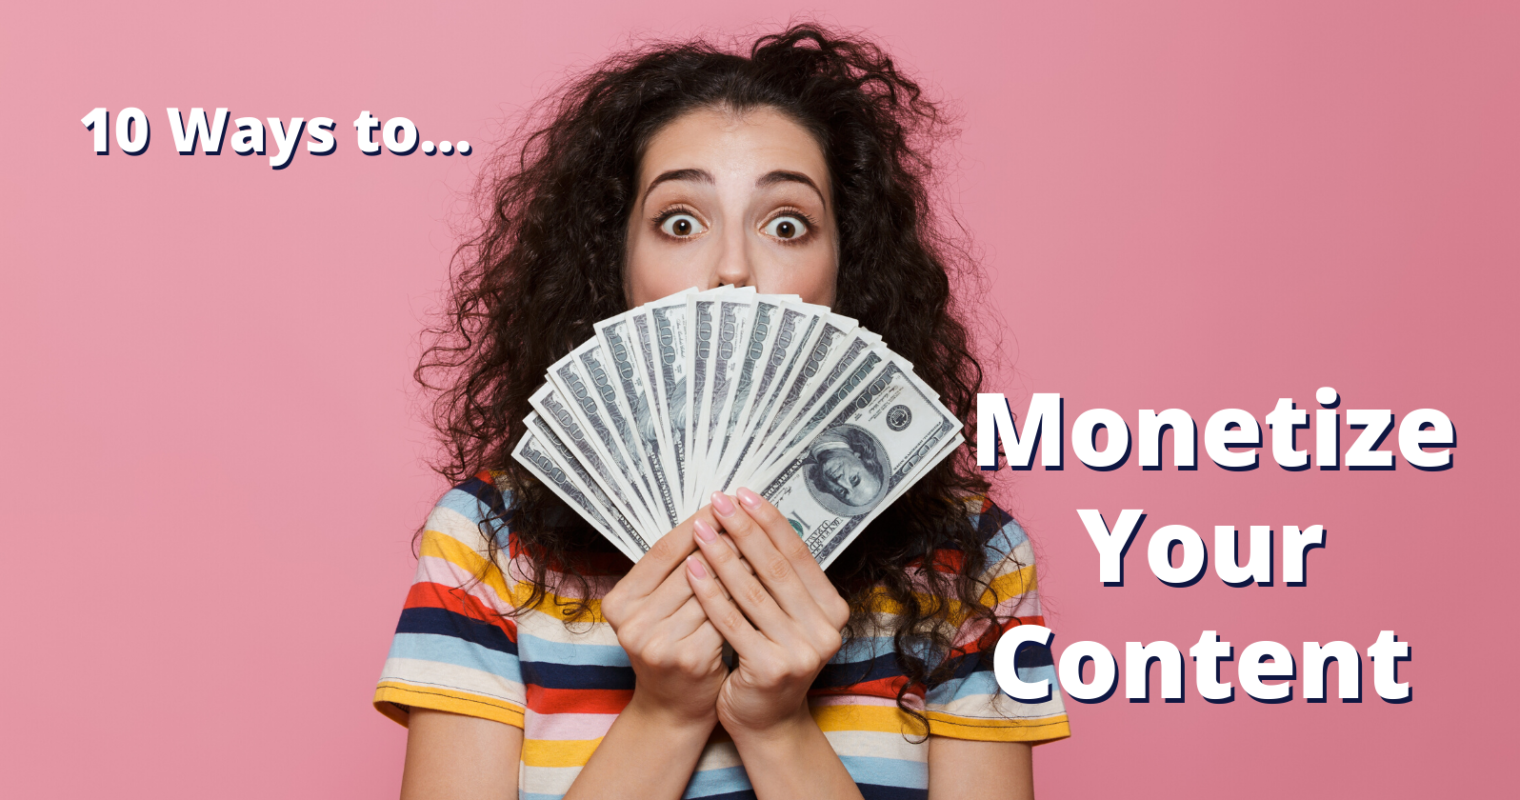 10 Ways to Monetize Your Content